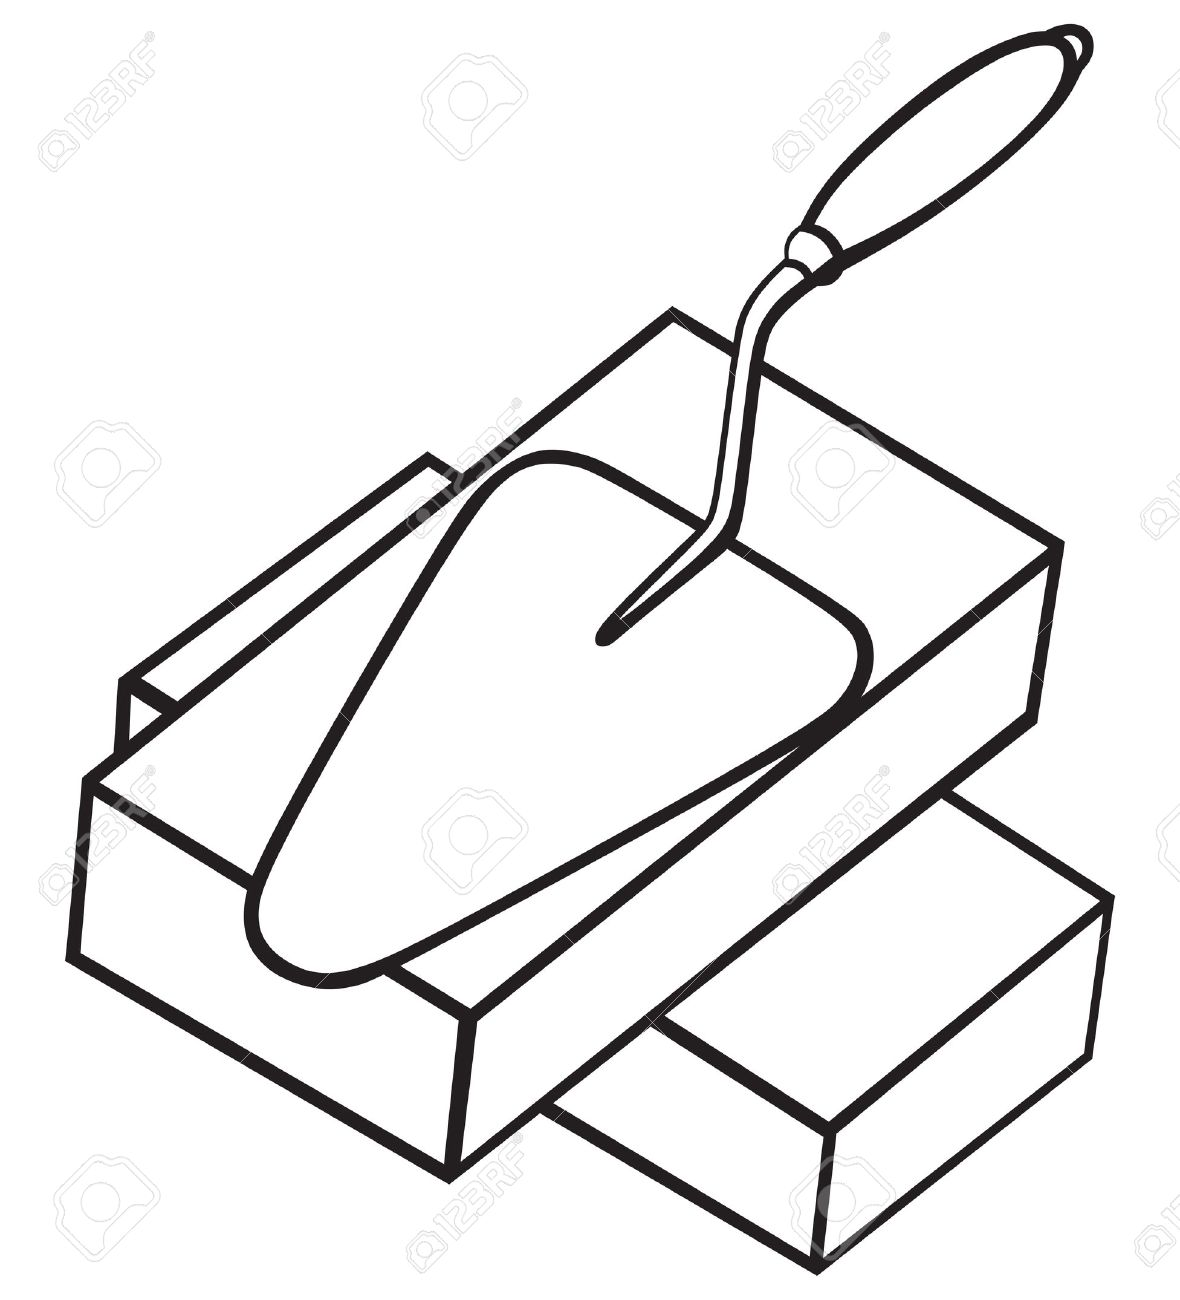 Symbol Brick And Trowel Royalty Free Cliparts, Vectors, And Stock ...